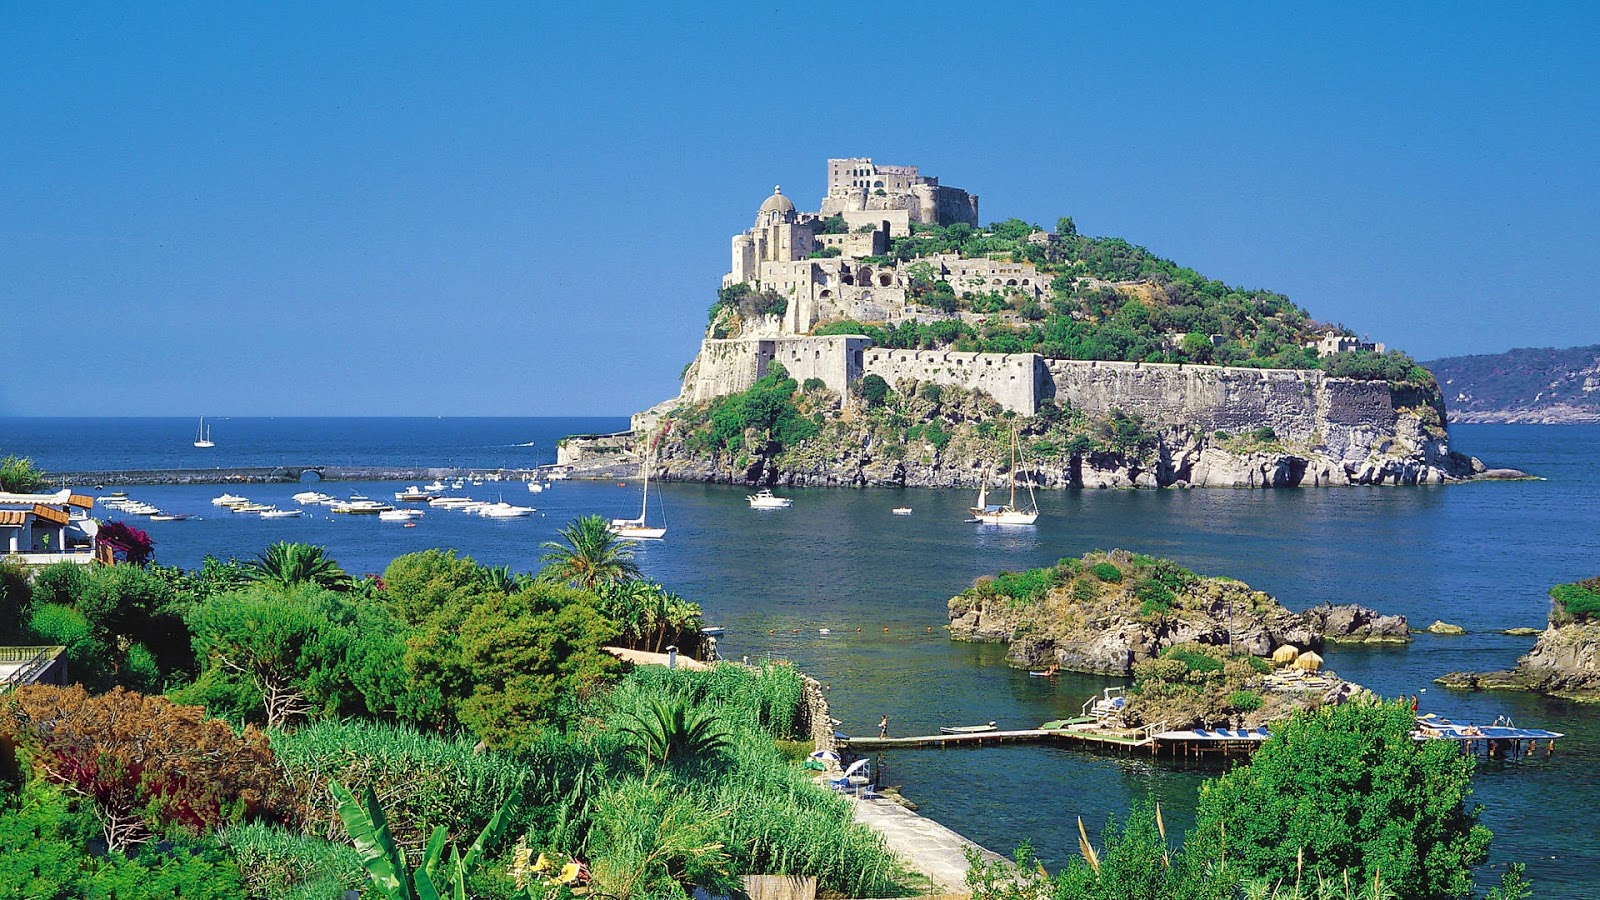 Island+of+Ischia+in+Italy+wallpaper+(1920x1080).jpg